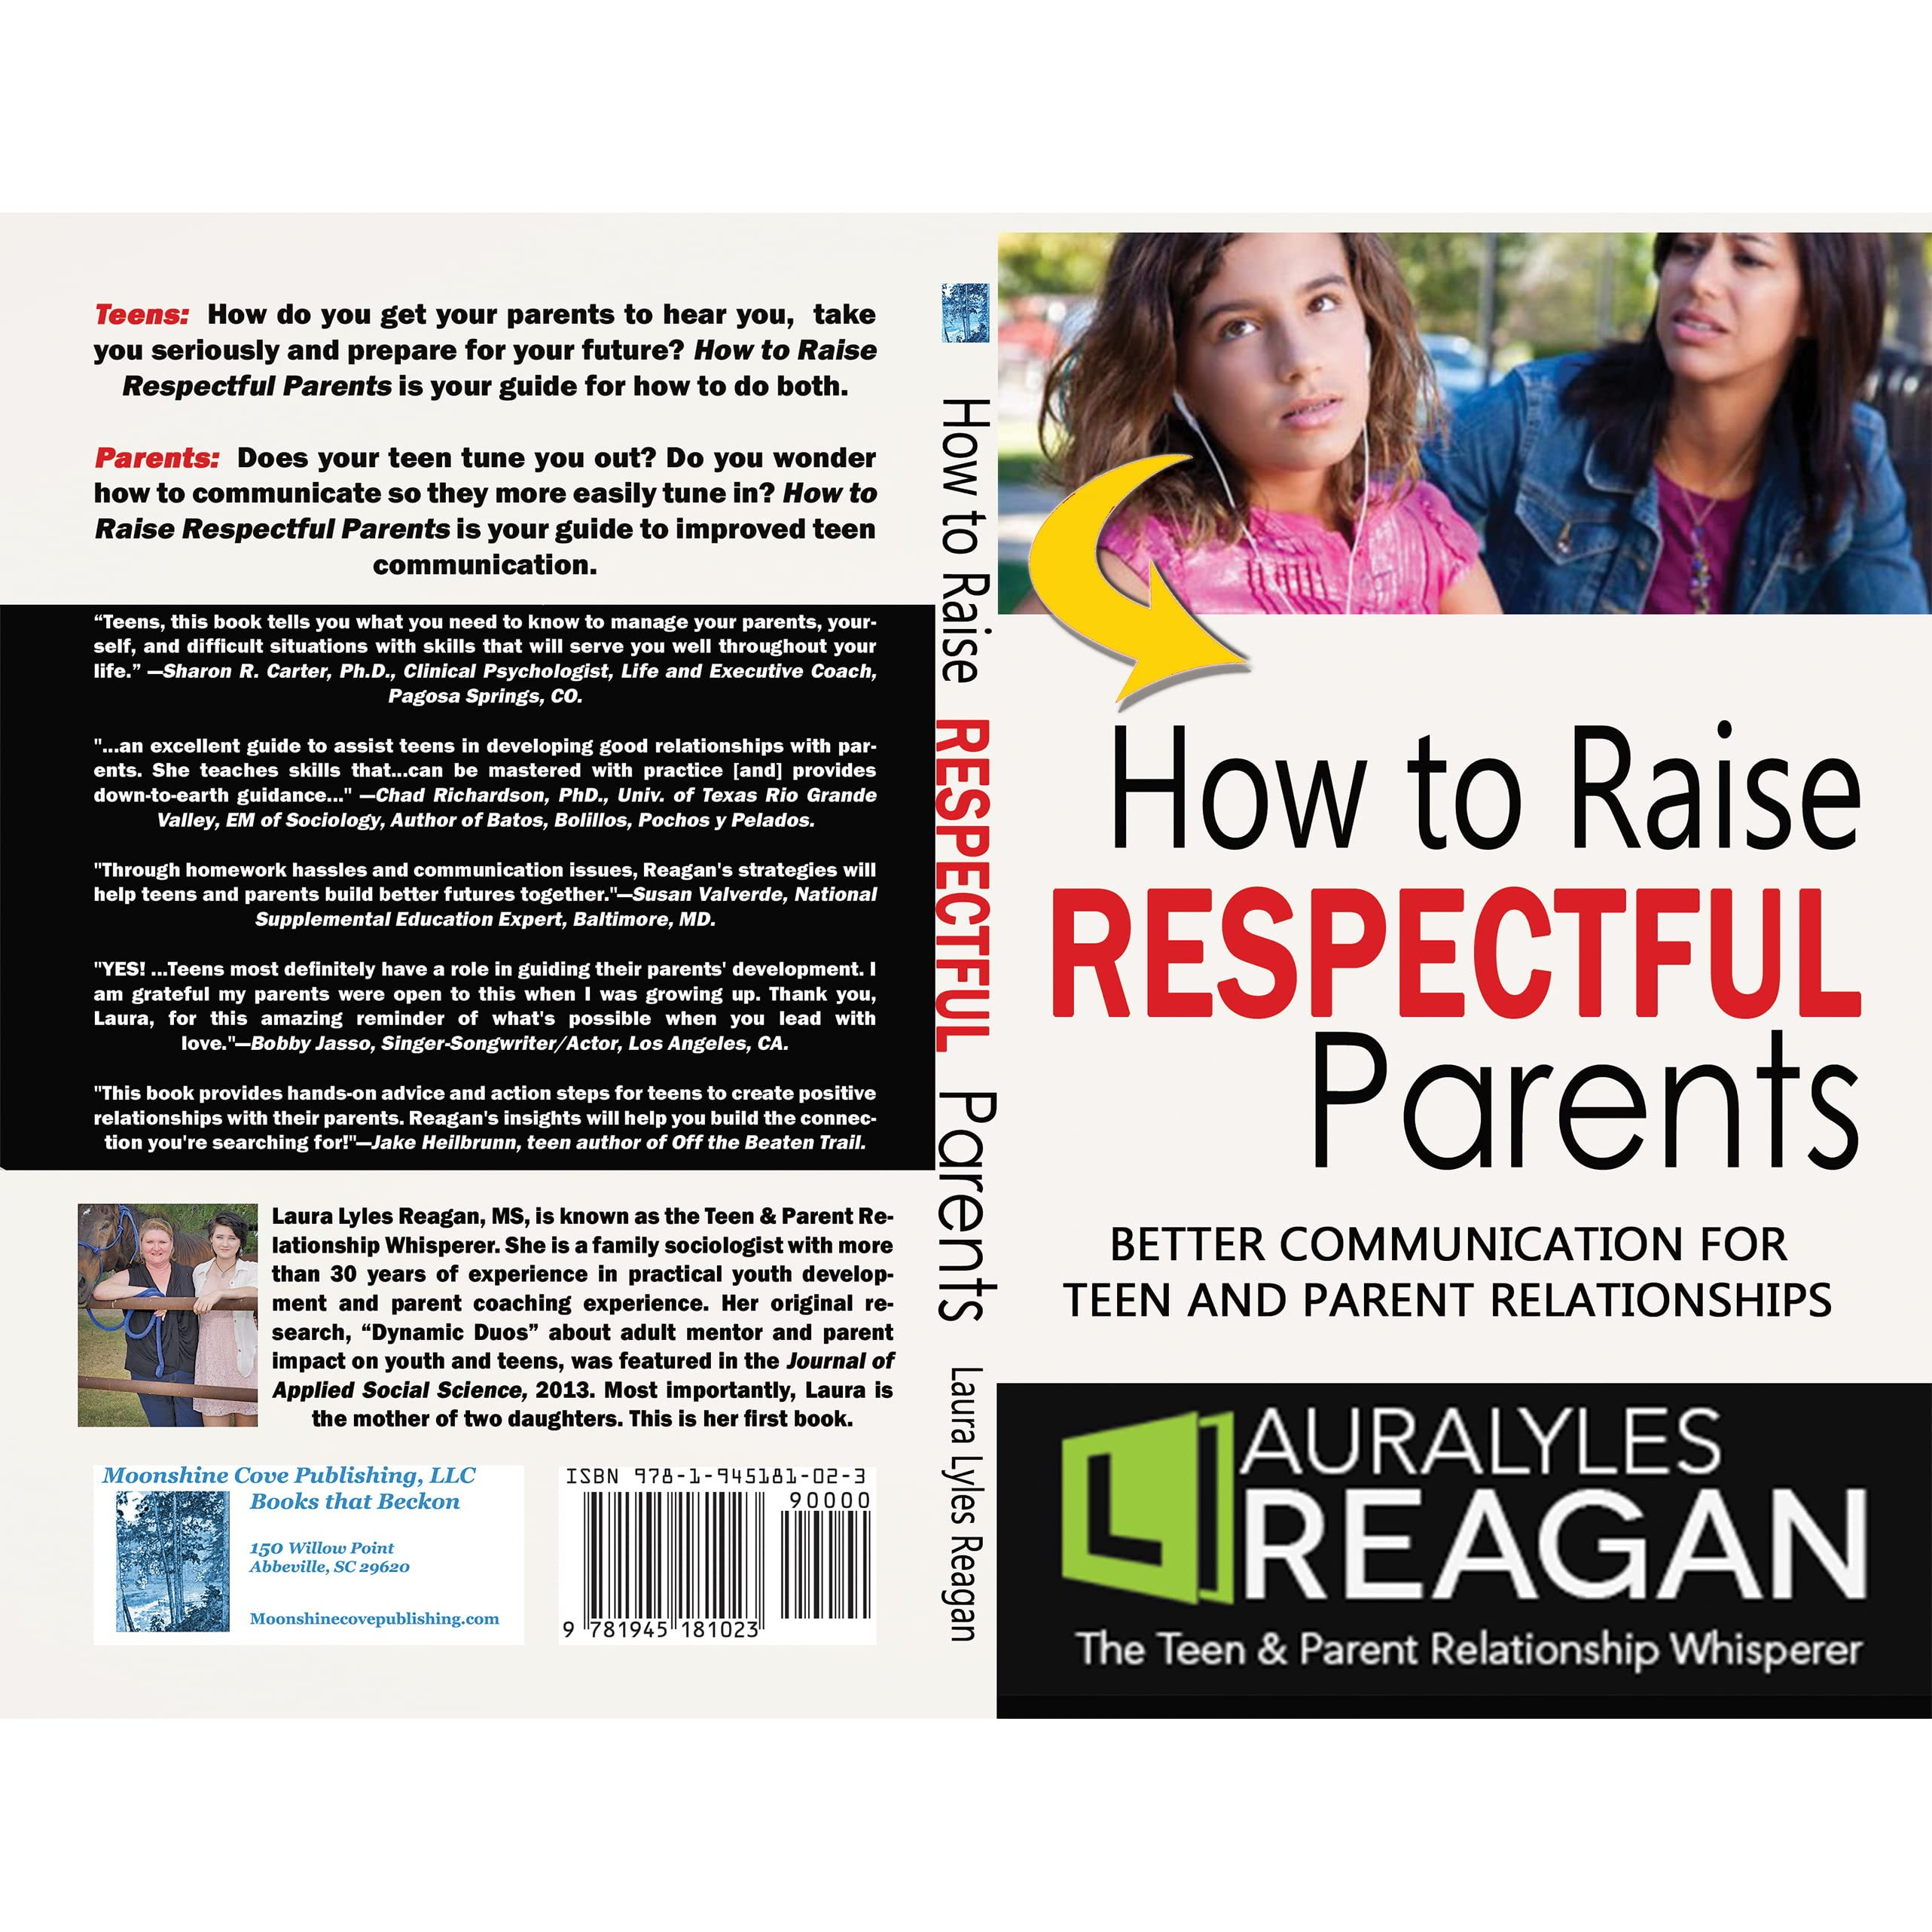 What Teens Need Most From Their Parents >> How To Raise Respectful Parents Better Communication For Teen And